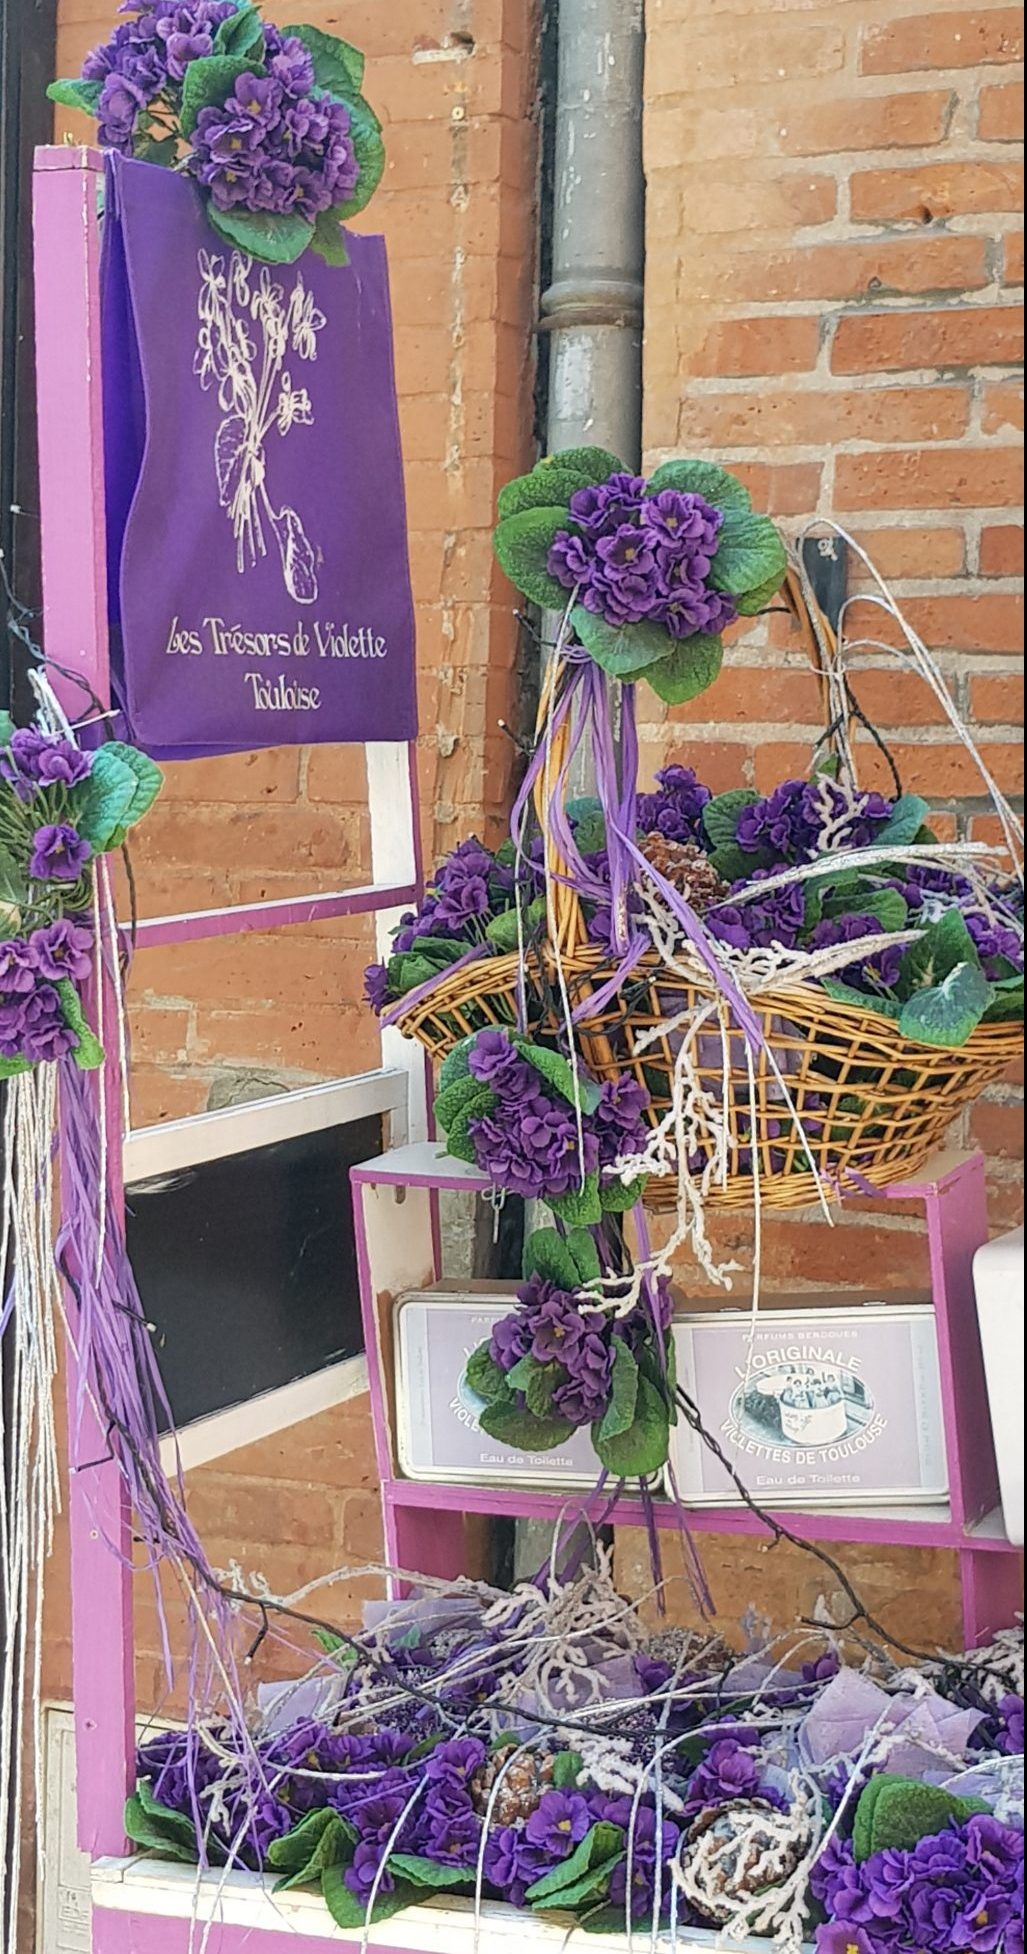 Violet is one of the symbols of Toulouse